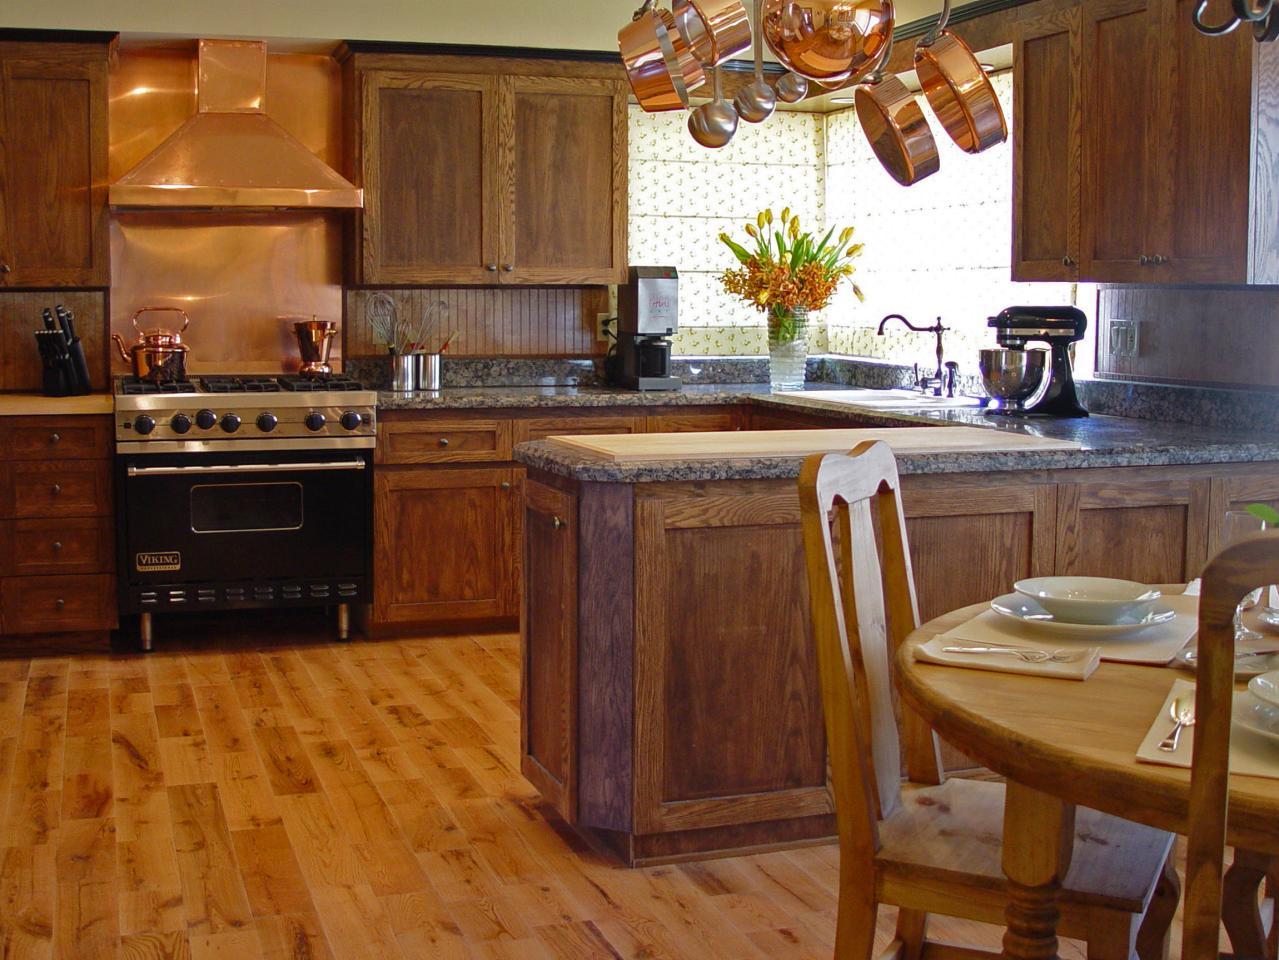 Historic Finish A Refinished Hardwood Floor Speaks The